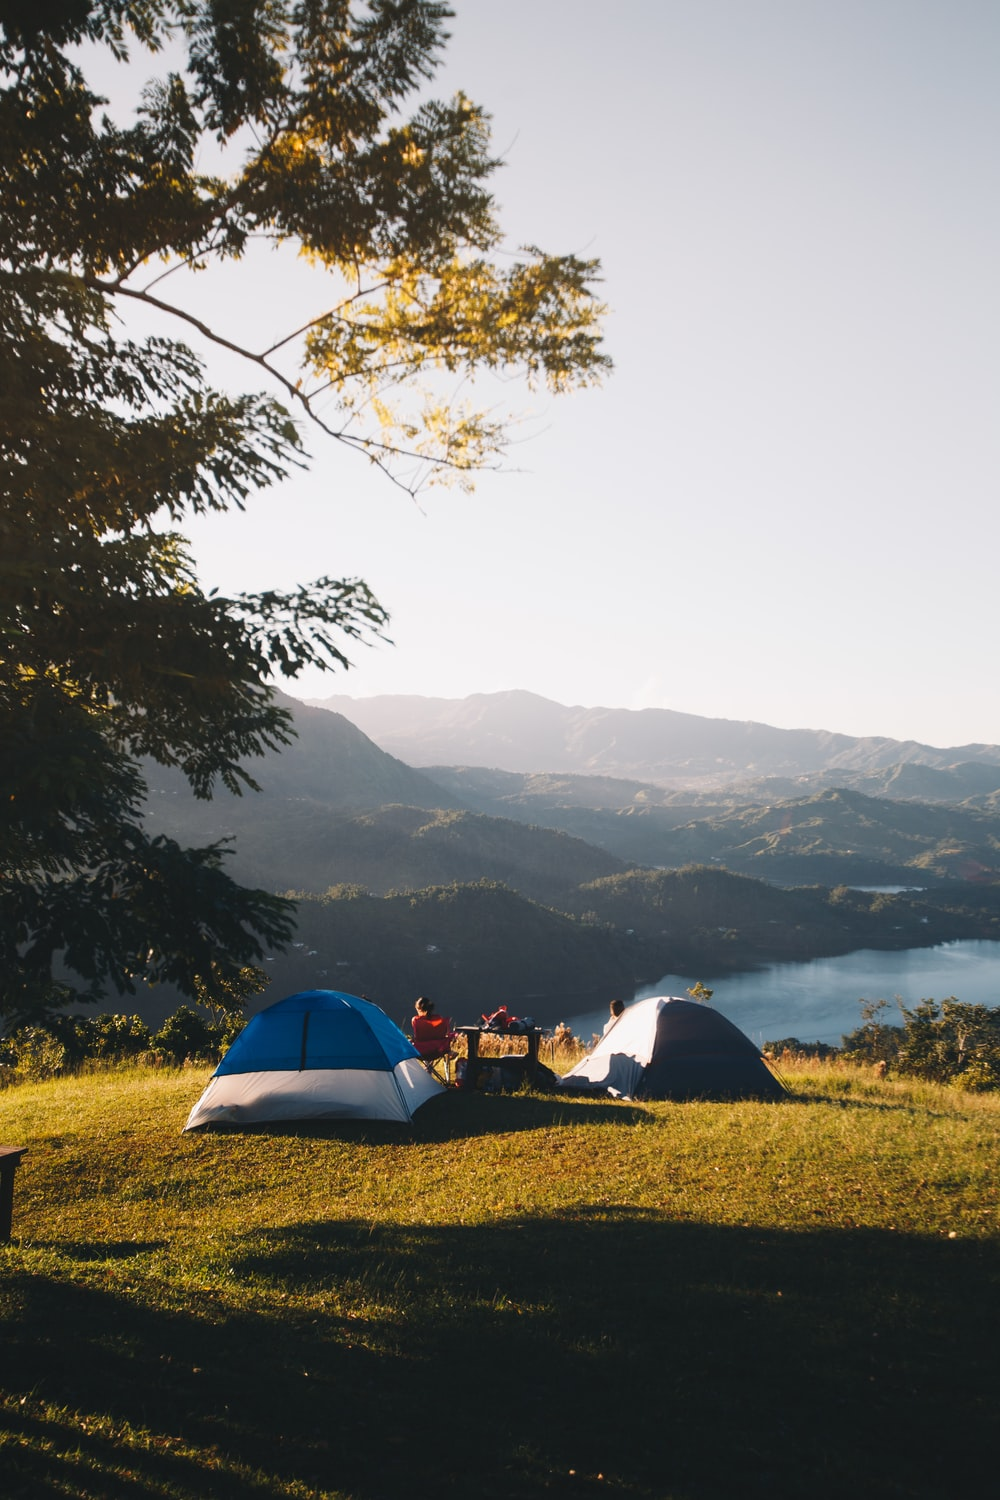 set-up tents near body of water